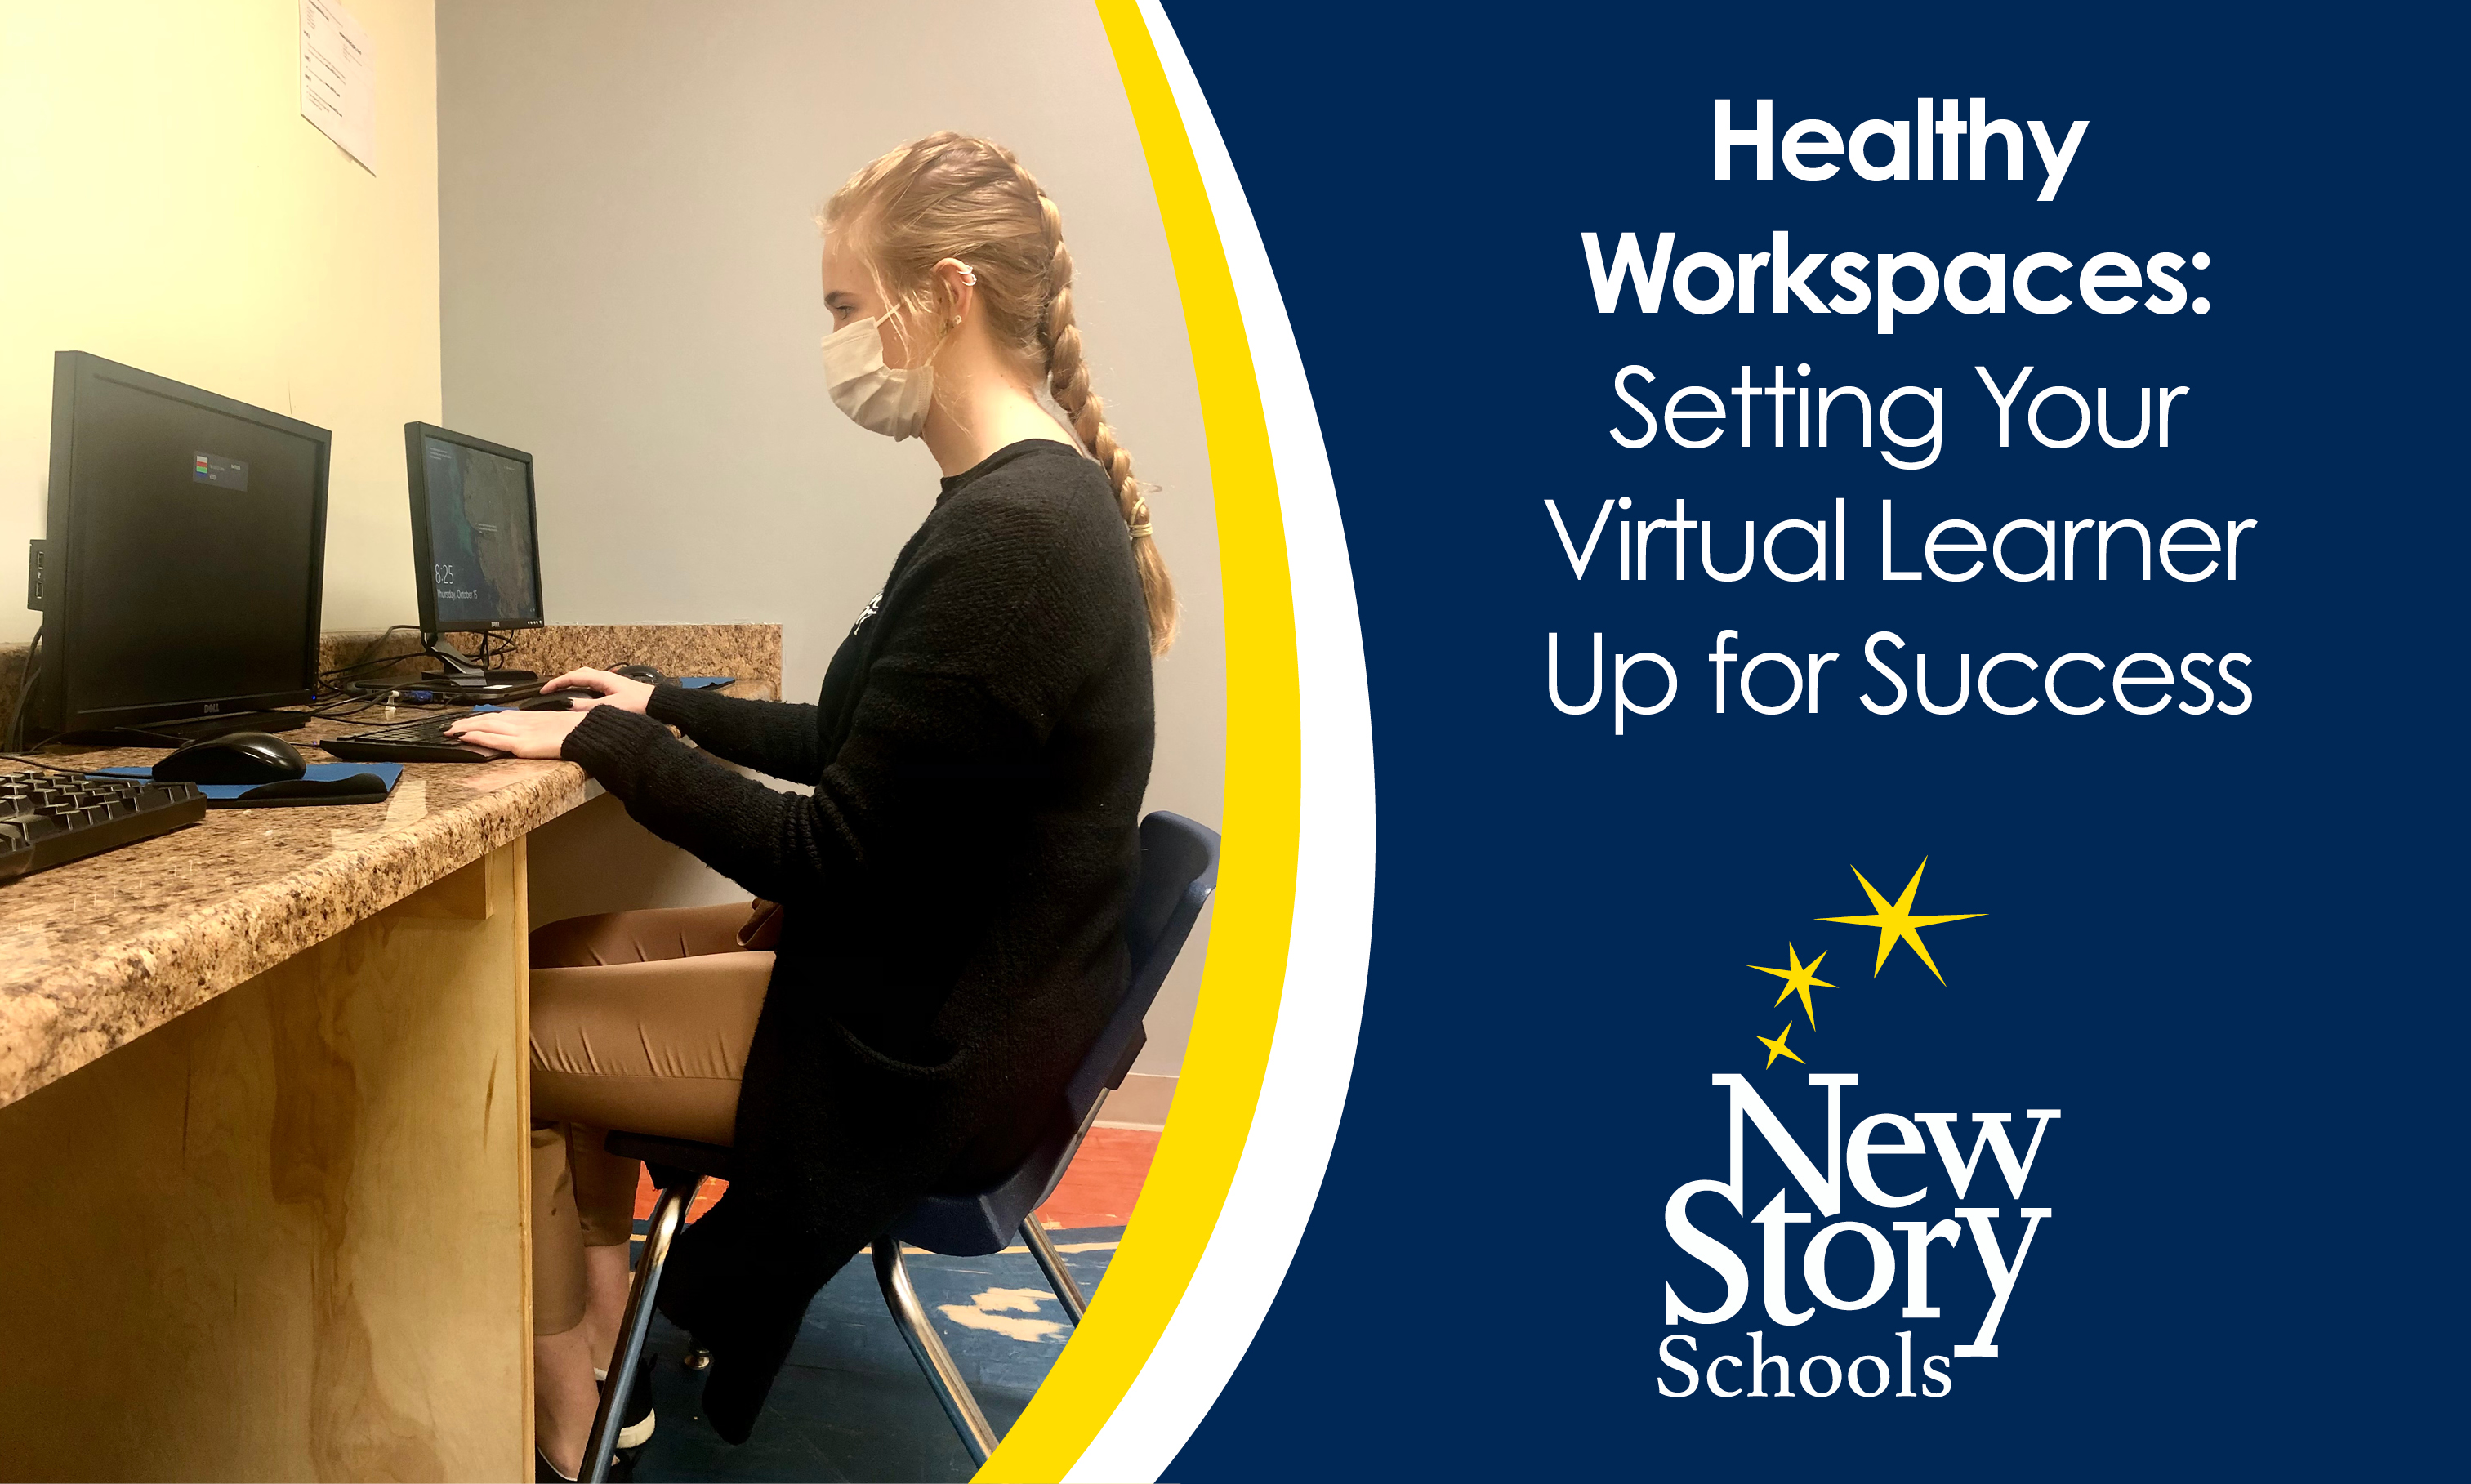 Healthy Workspaces: Setting Your Virtual Learner Up for Success